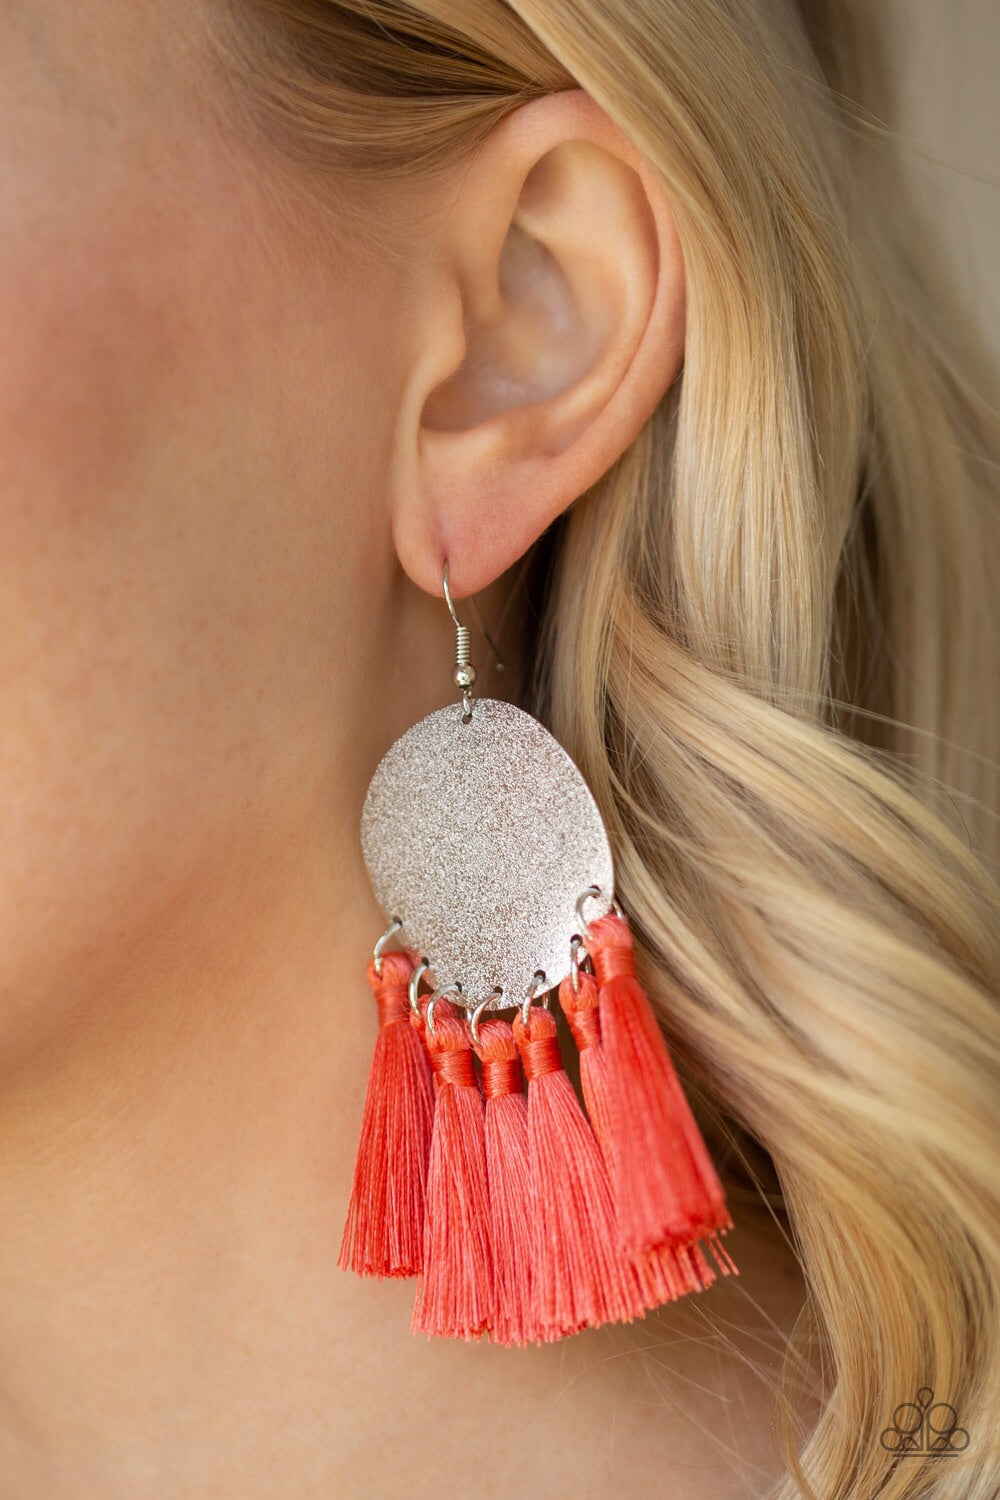 Paparazzi Jewelry Earrings Tassel Tribute - Orange